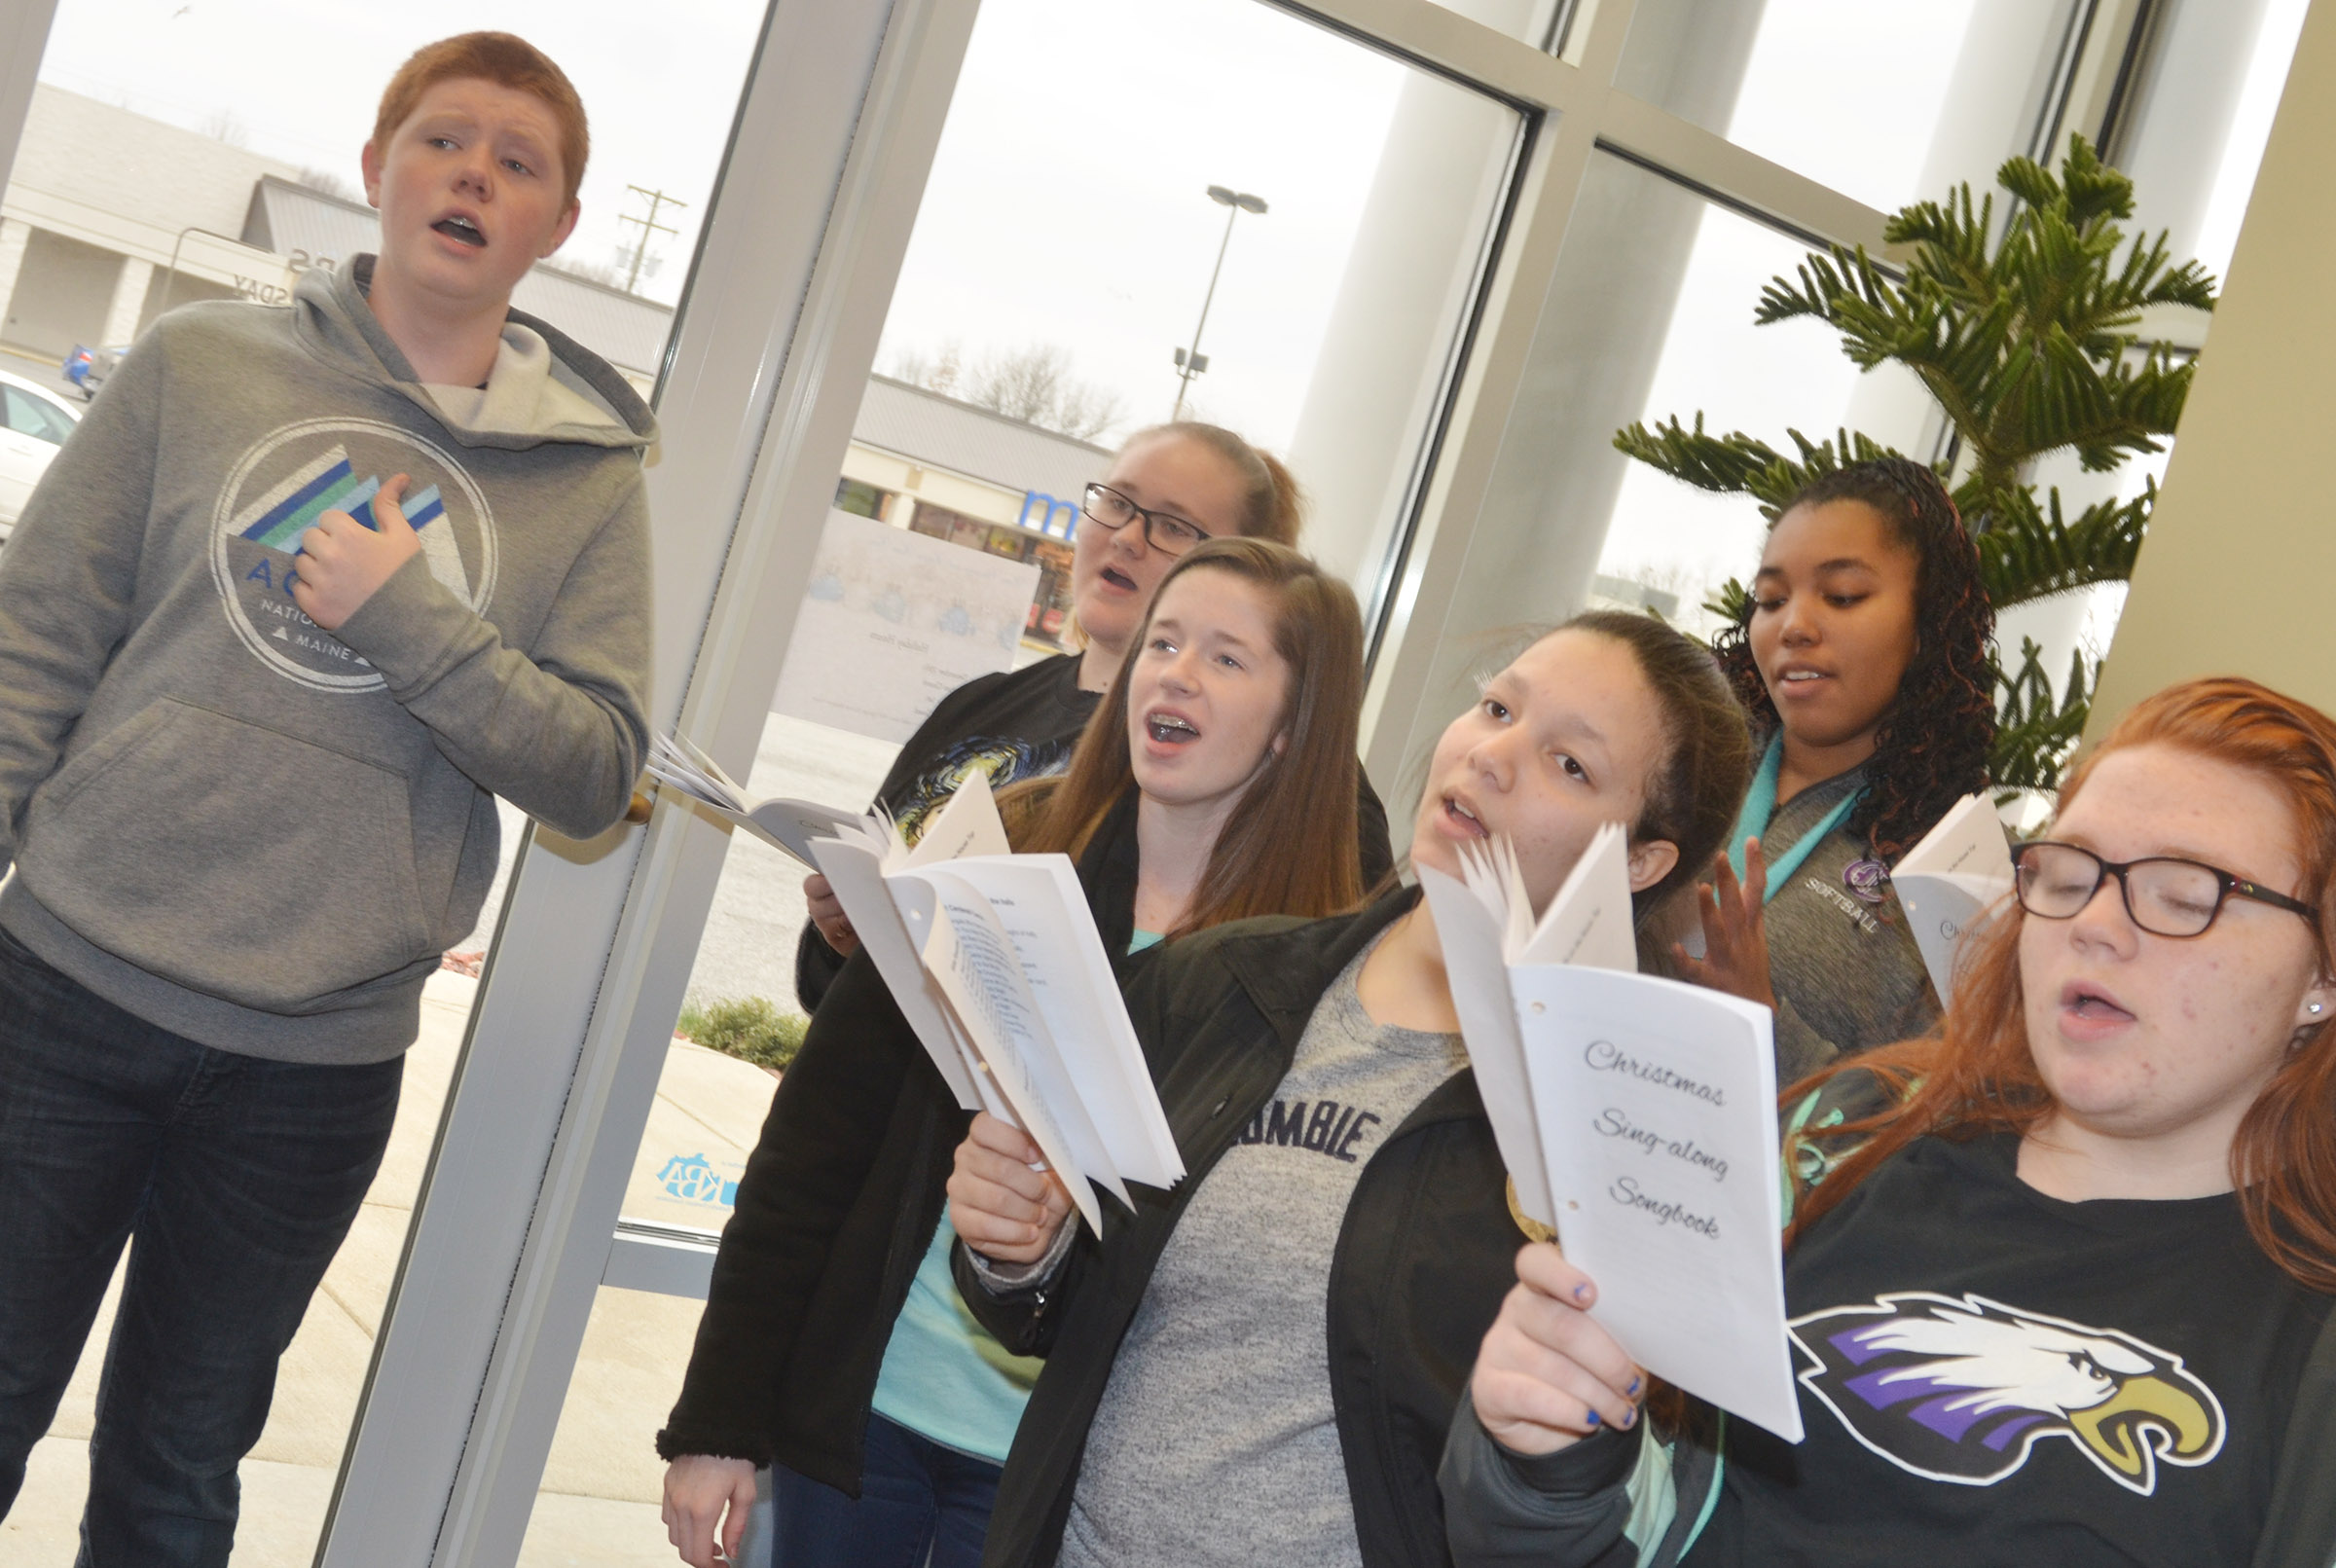 CHS choir members sing Christmas carols at Taylor County Bank. From left, front, are sophomore Gracyne Hash and freshmen Tierra Bridgewater and Jadelyn Caffee. Back, freshman Colin Harris, senior Jay Cox and junior Malaya Hoskins.